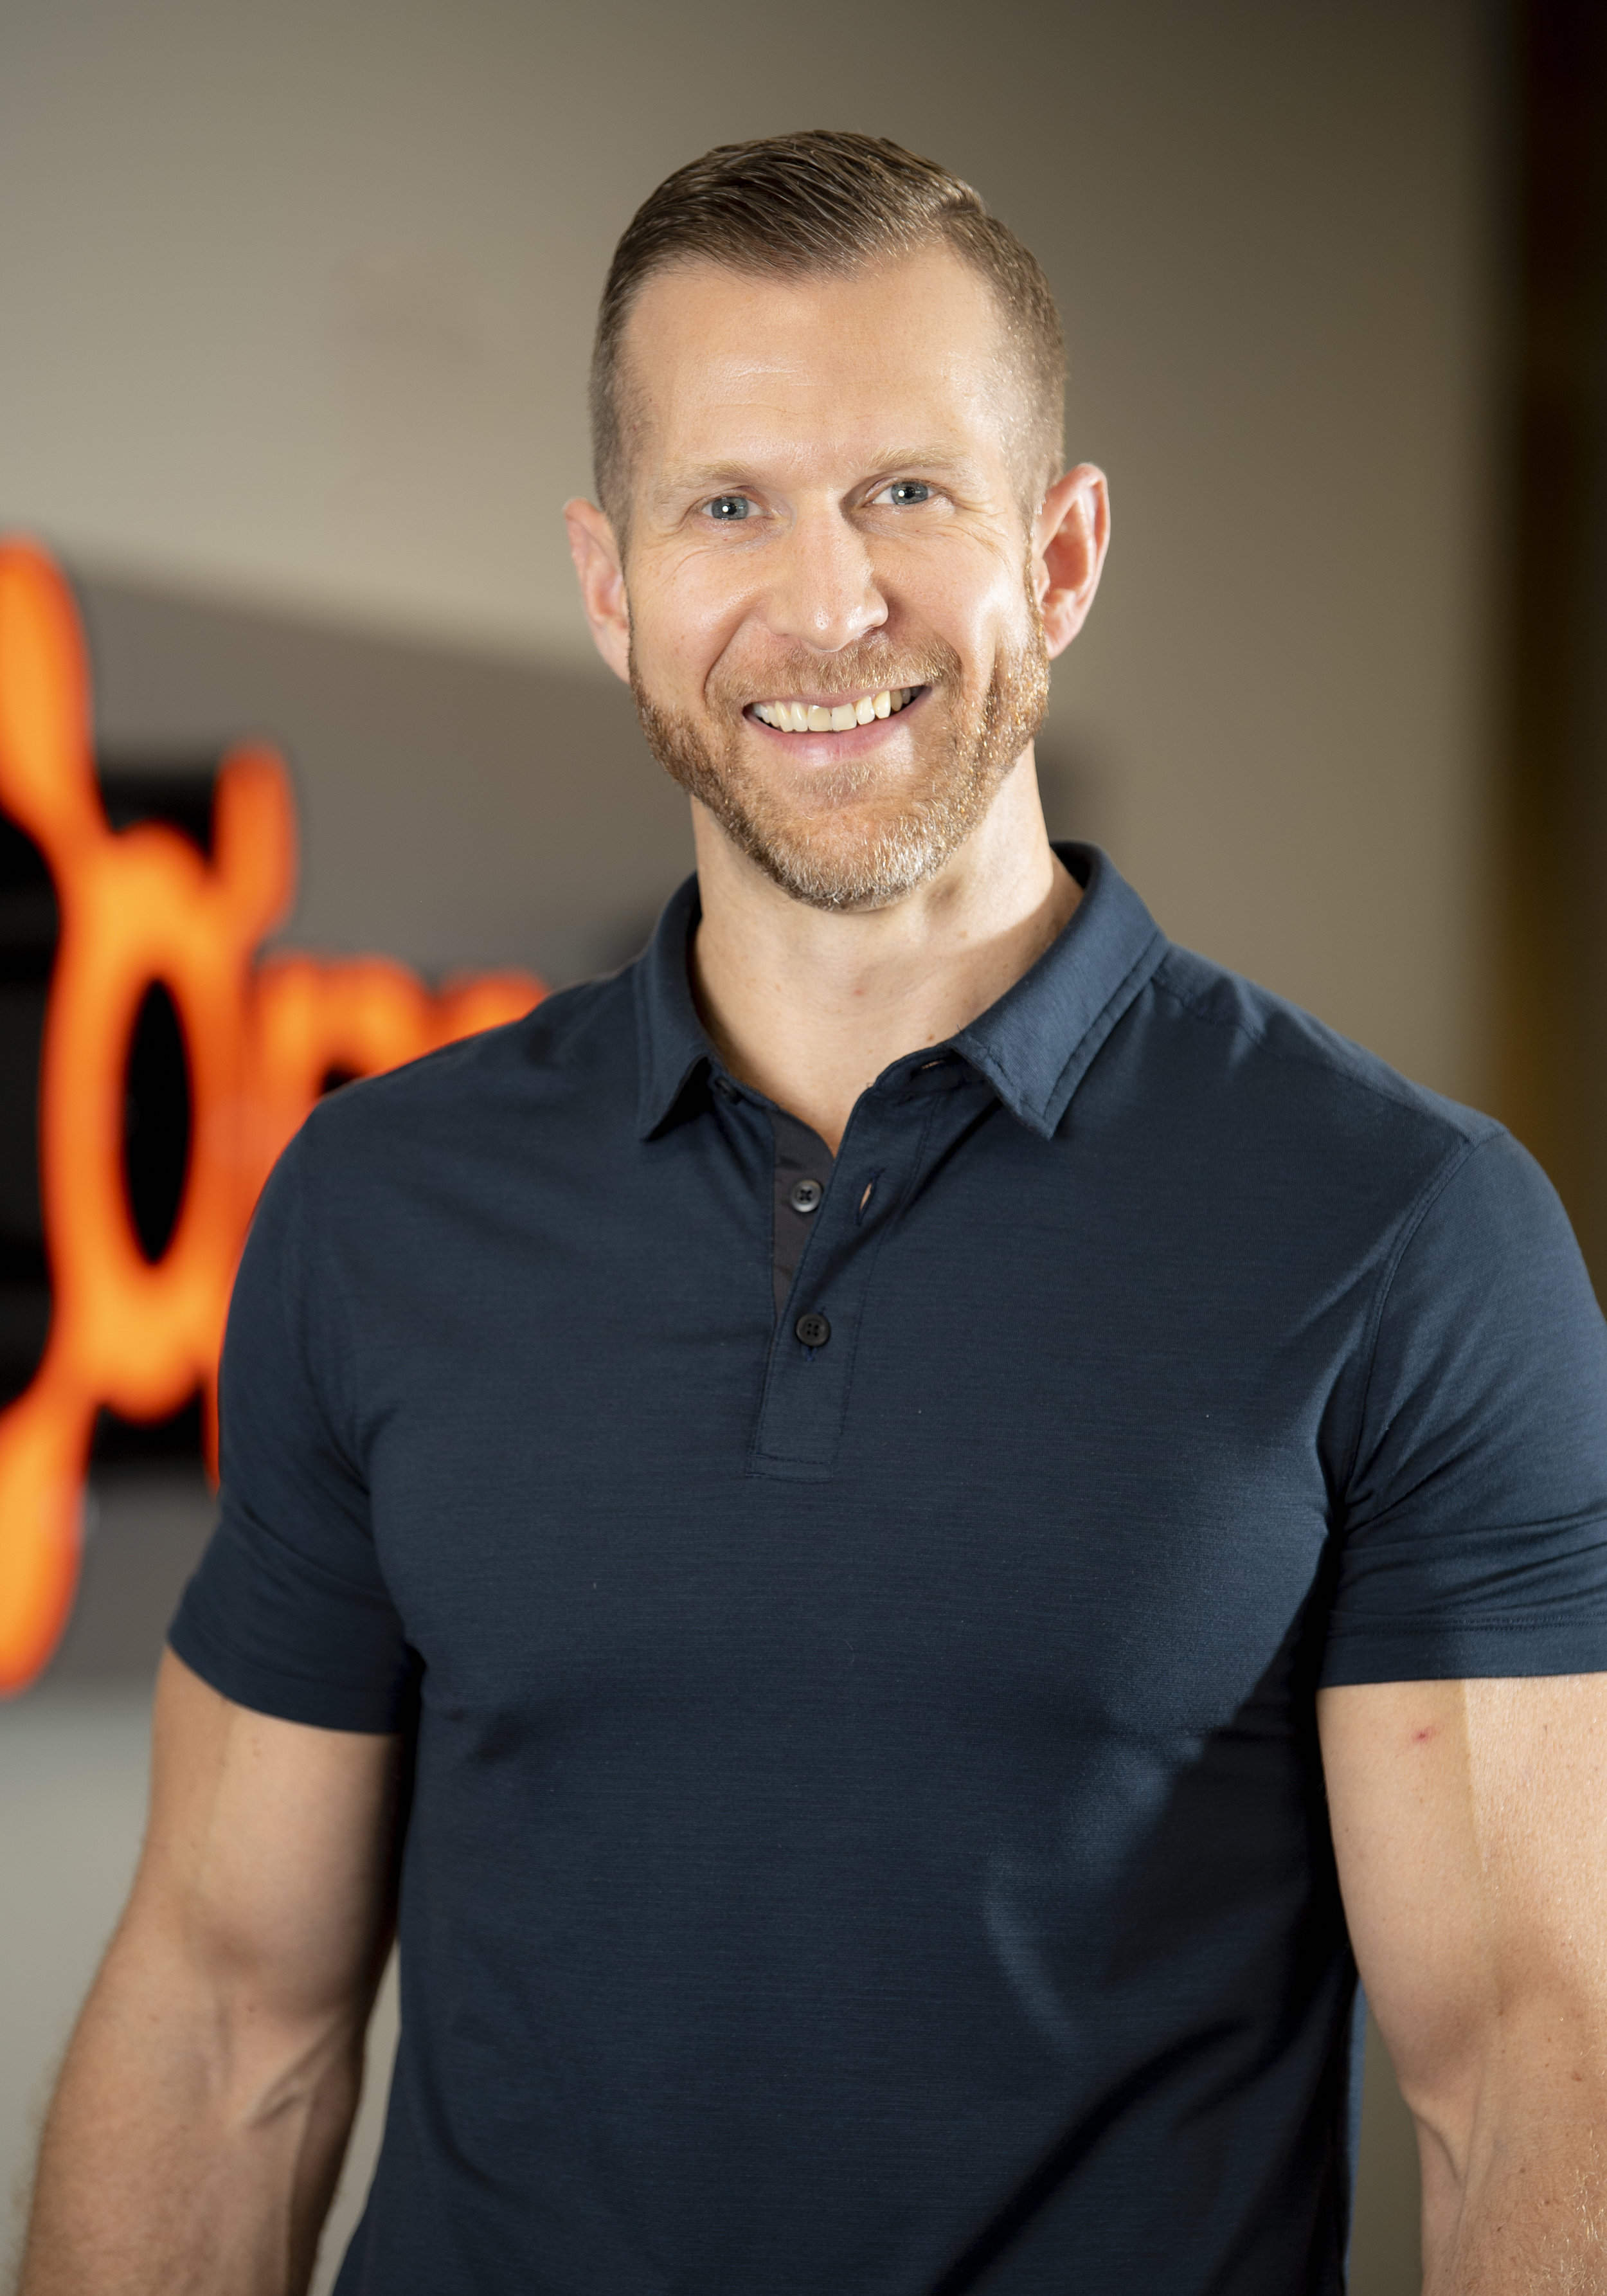 Mike Mehr - National Sales DirectorBringing over 17+ years of management experience in the fitness industry, Mike joined Jamie Weeks in 2014 to start the building of Orangetheory Fitness franchises. This partnership contributed to the rapid growth and expansion of Honors Holdings. Mike graduated from Towson University with his B.A. in Communications and Business Administration. Mike is passionate about spending time outdoors with his dog Diesel, and is an avid fitness enthusiast.